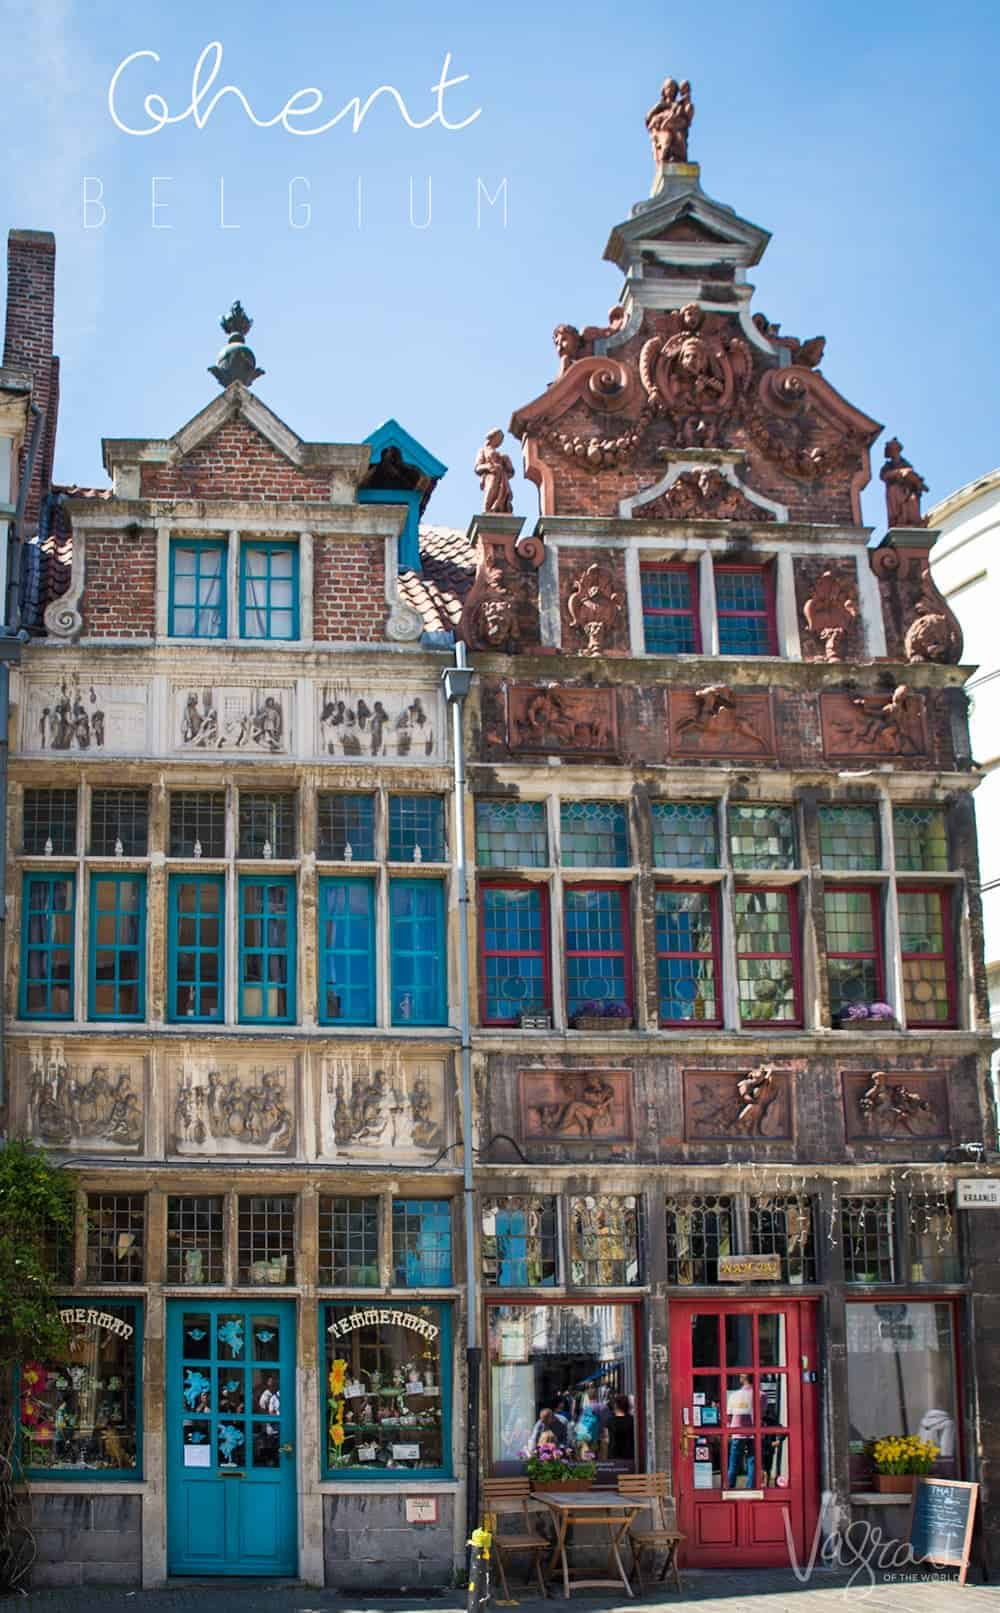 Find out why those in the know rate Ghent above Belgium's other popular tourist destinations.